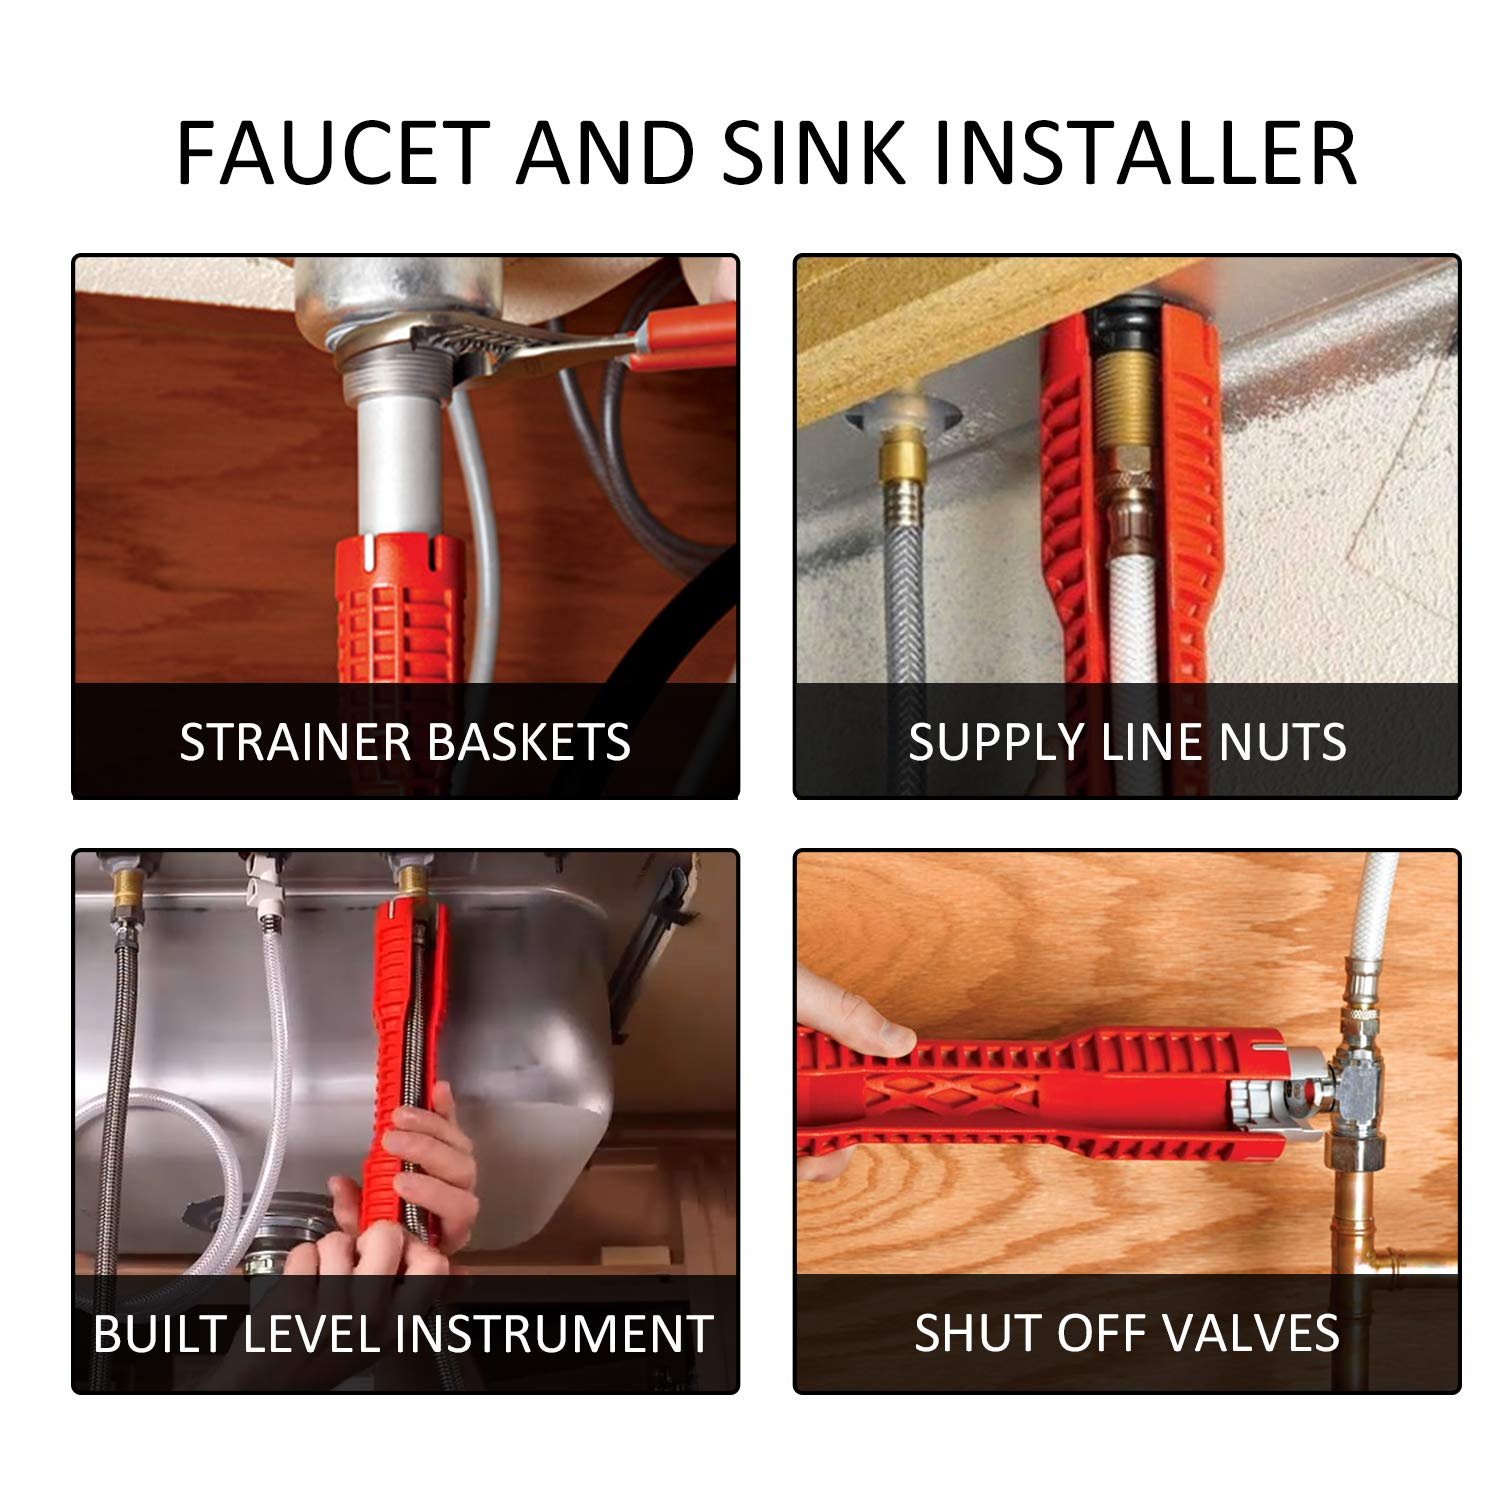 Seven Sparta (8 in 1) Faucet Wrench Removal Tool Faucet And Sink Installer Kitchen Sink Faucet Basin Pipe Nut Plumbing Wrench (Red)